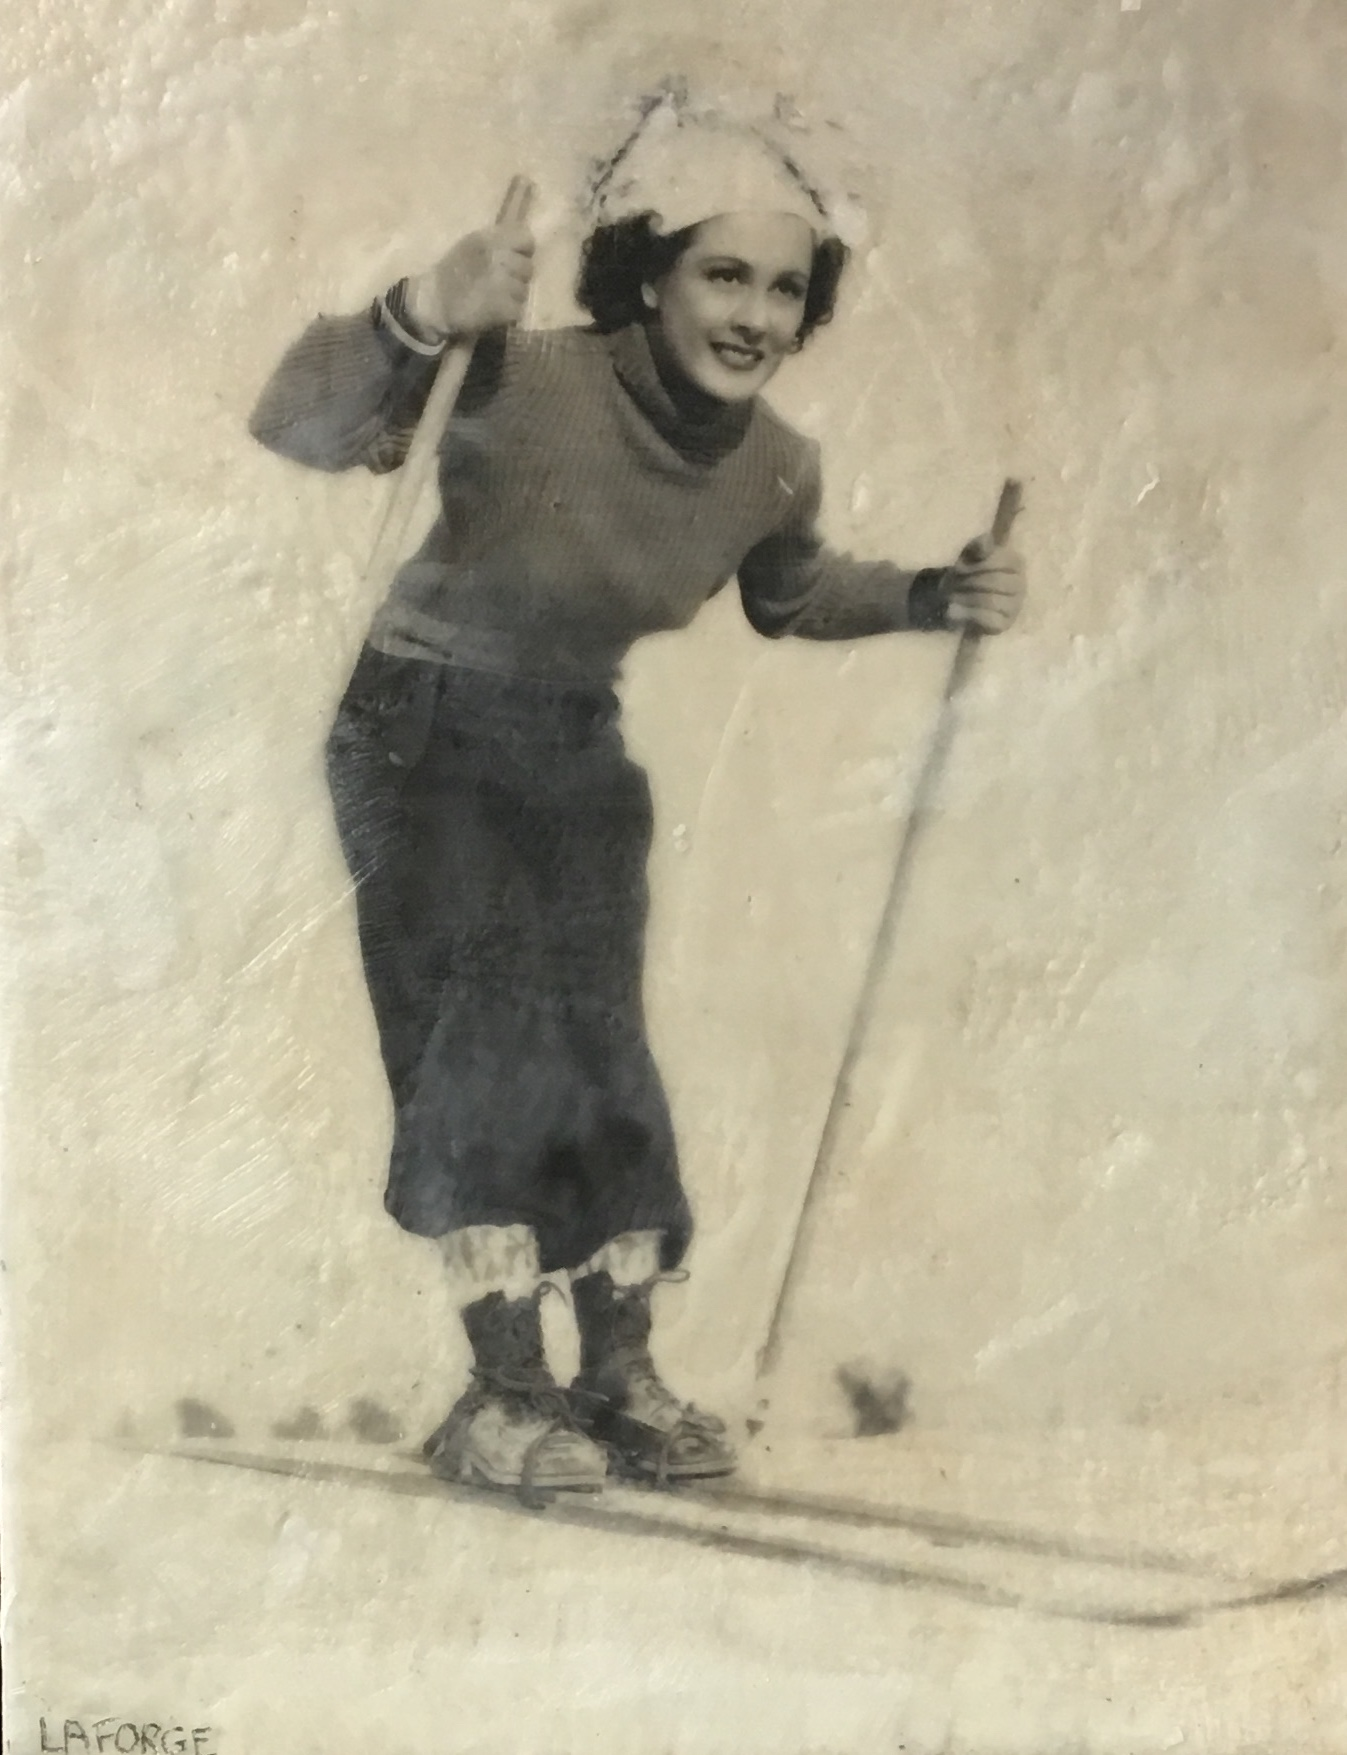 Vintage Skier 3, Encaustic painting by Lee Anne LaForge | Effusion Art Gallery + Cast Glass Studio, Invermere BC